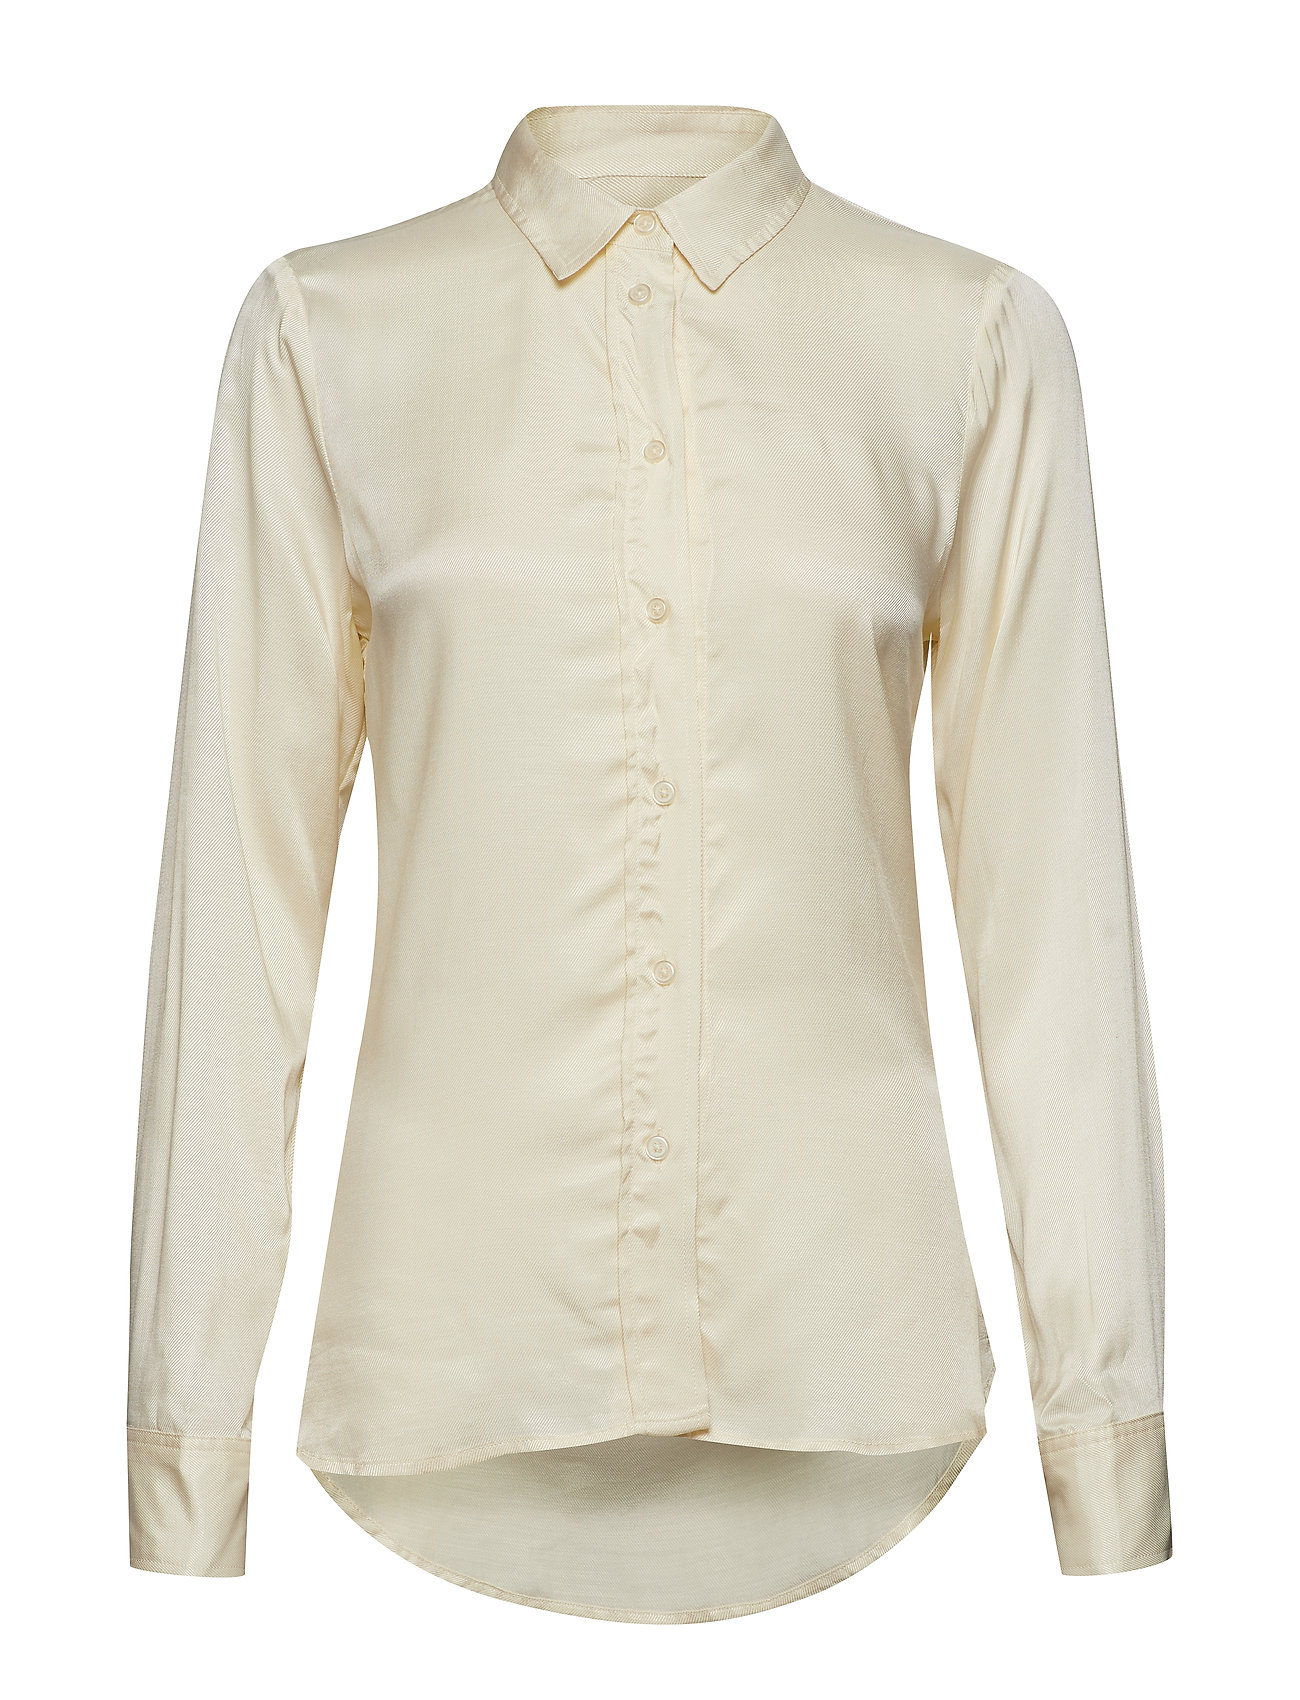 WhiteSoaked Jeanette In Lsantique Sl Luxury Shirt XuPZOkTi